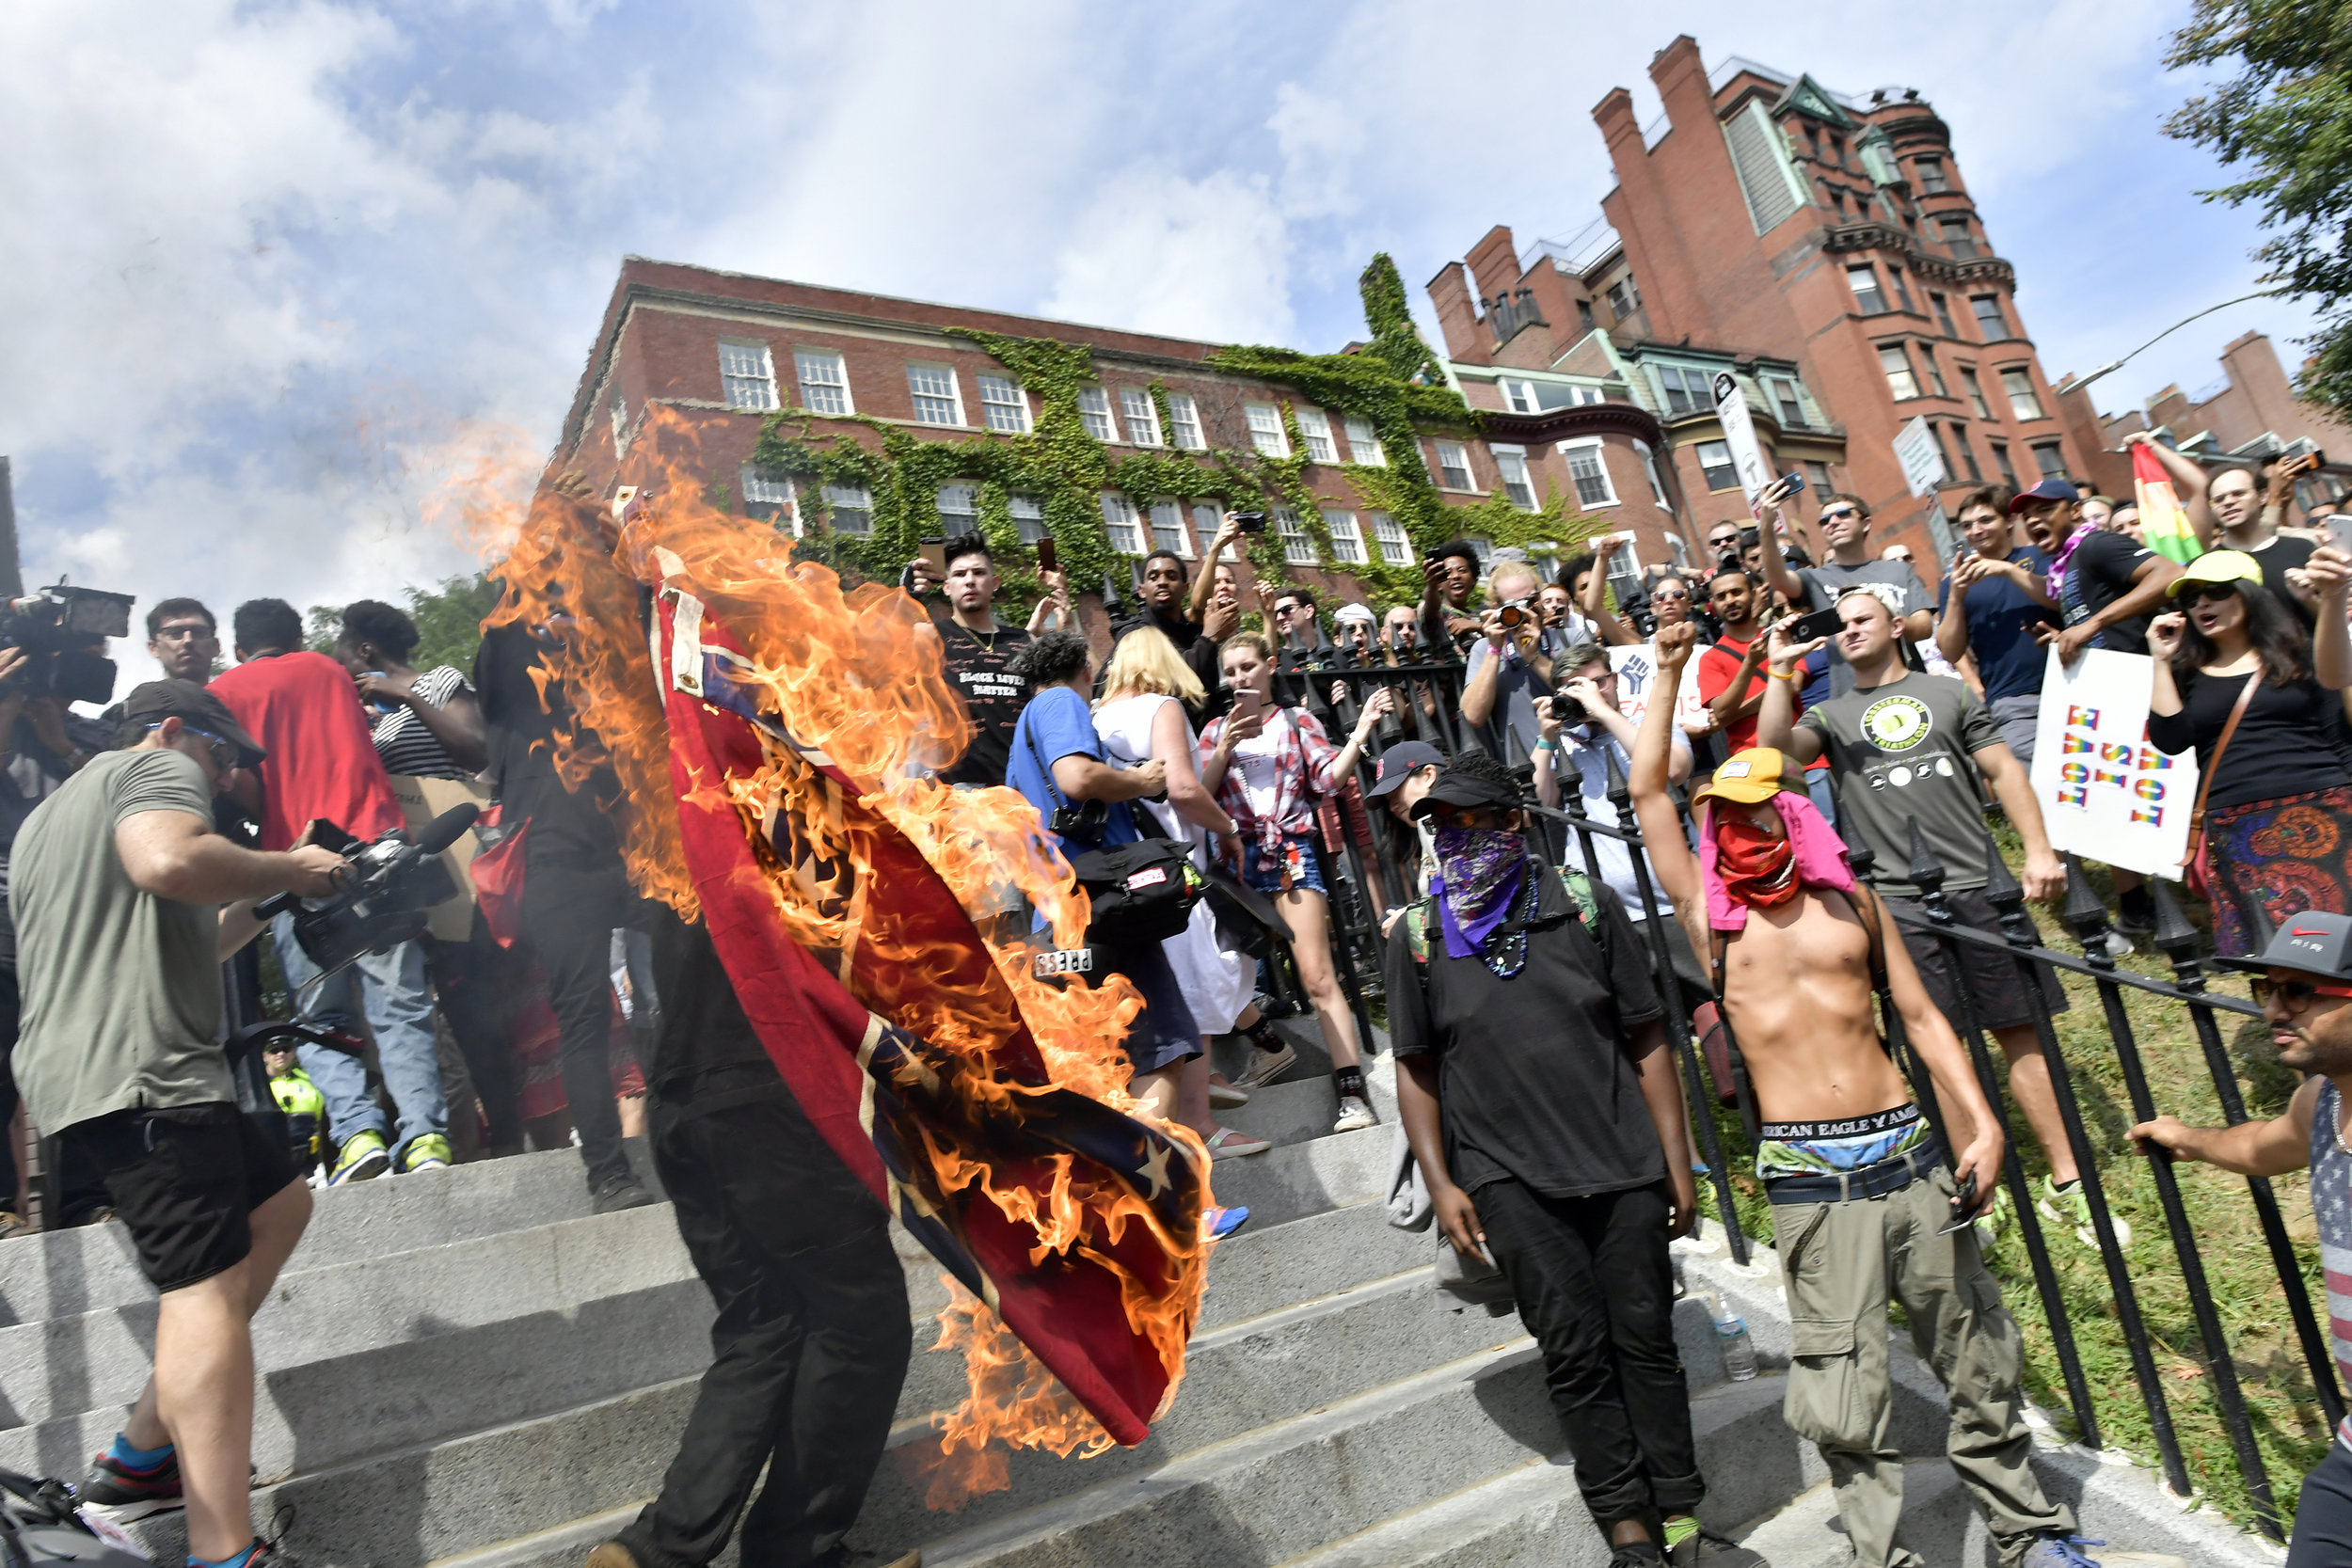 BOSTON, MA Saturday, August 19, 2017 -- Tens of thousands of demonstrators turned out to protest the Boston Free Speech Rally on Boston Common.